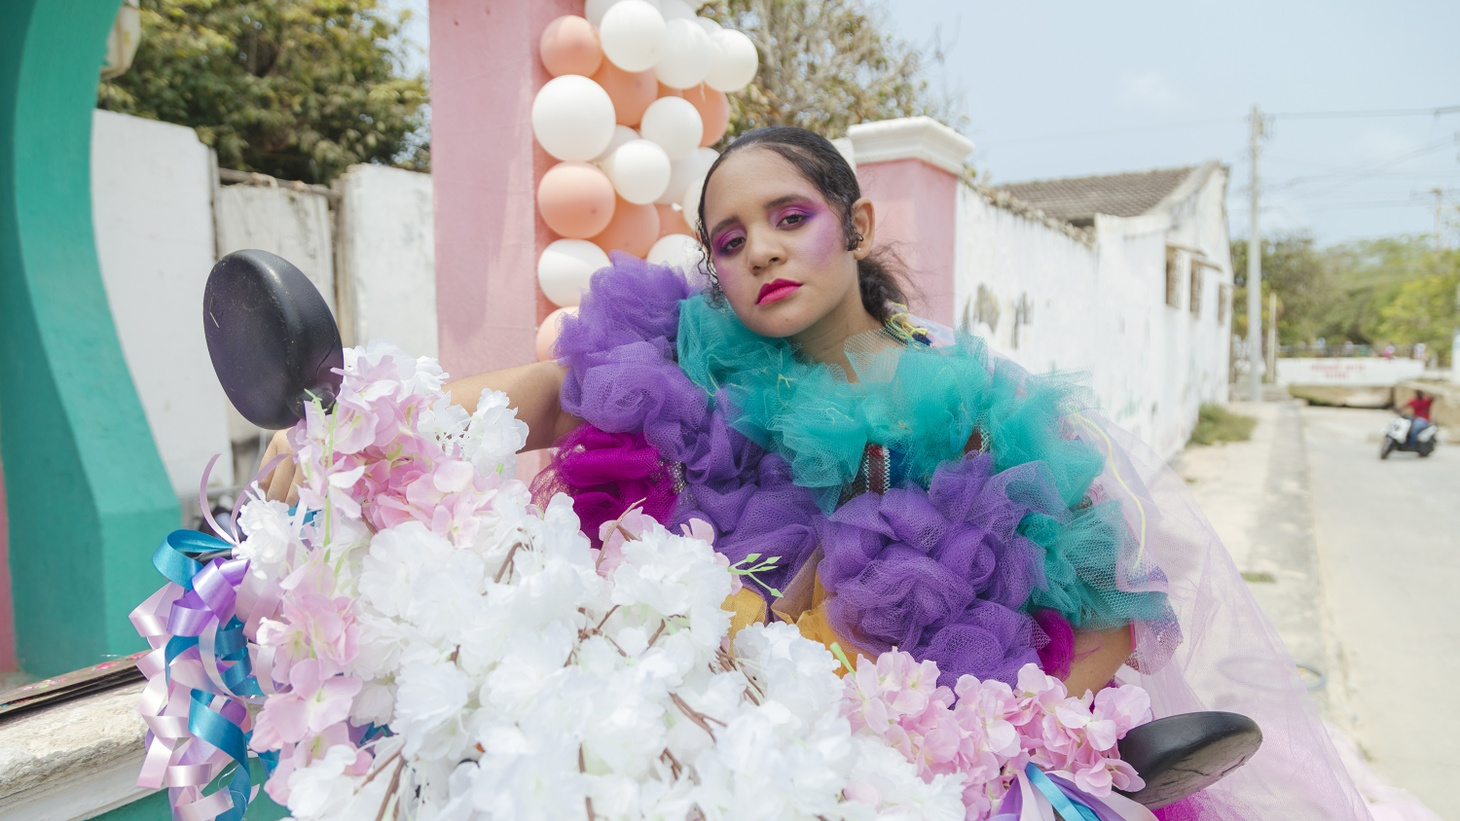 An interdisciplinary musician and artist, Lido Pimienta has been on the scene for a decade but is just now finding the spotlight.